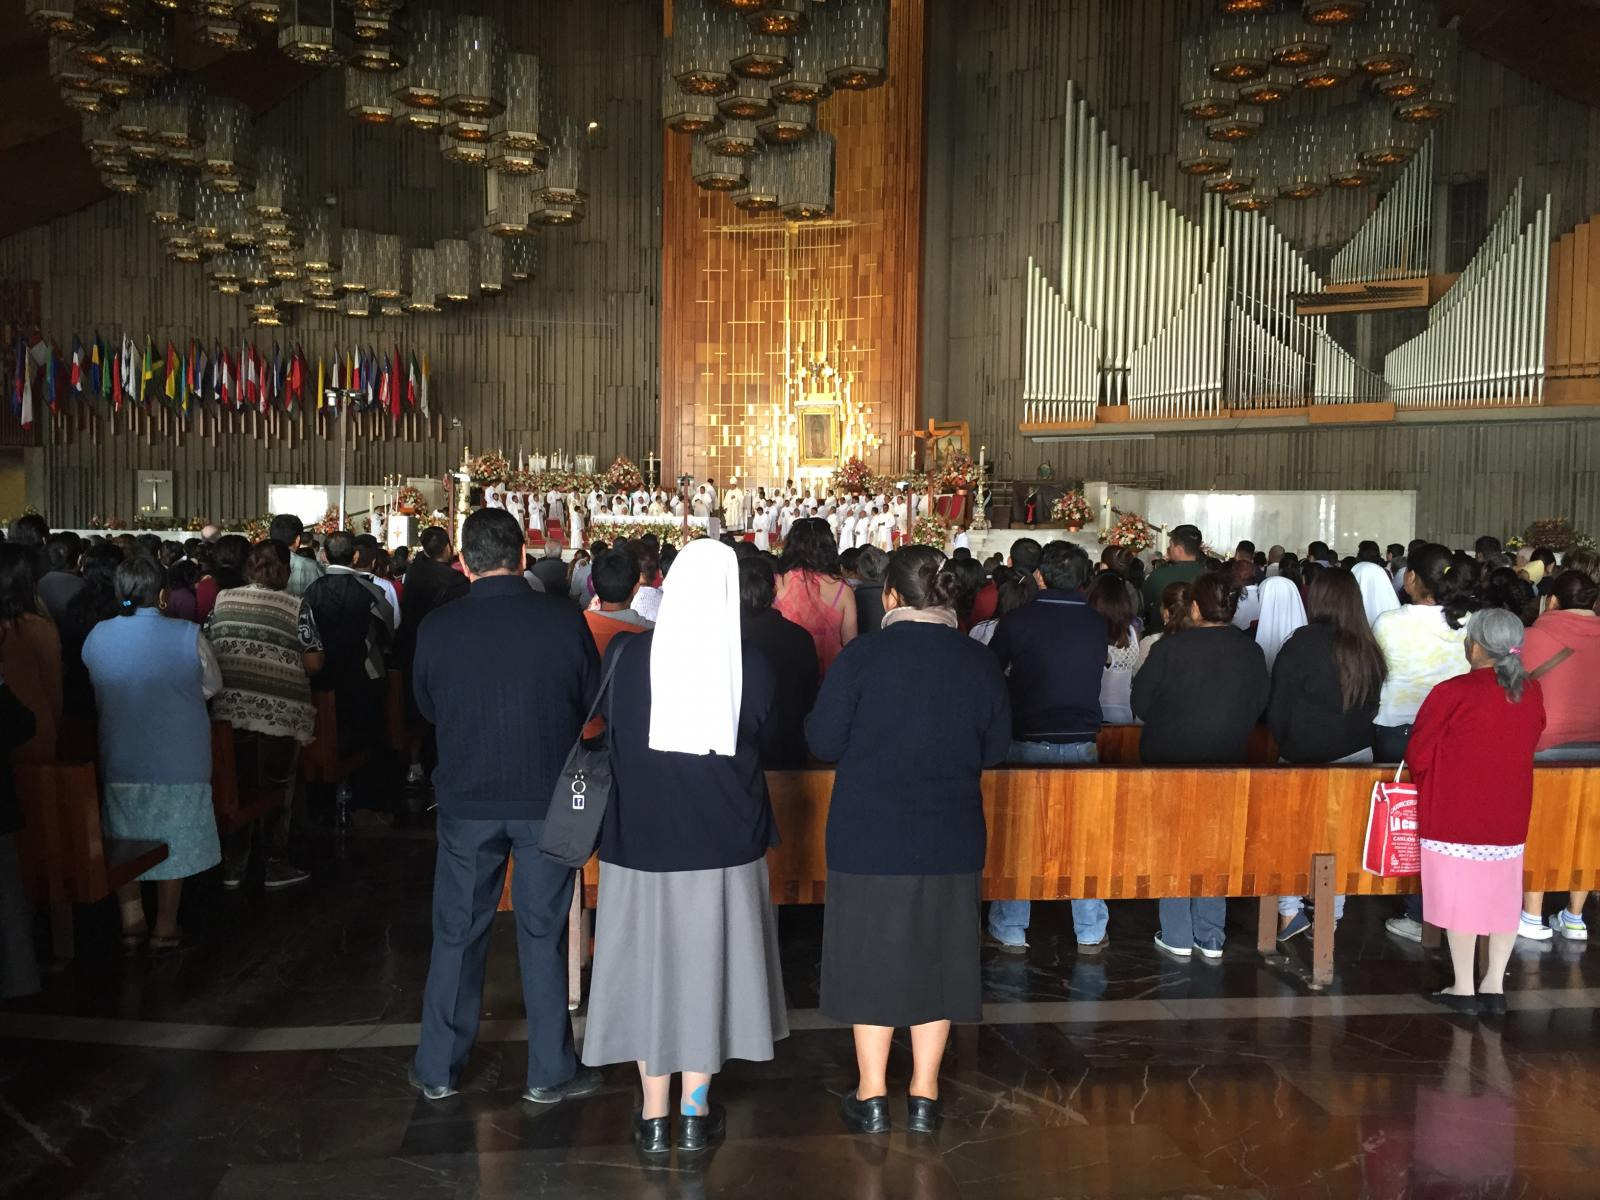 Mass at Our Lady of Guadalupe